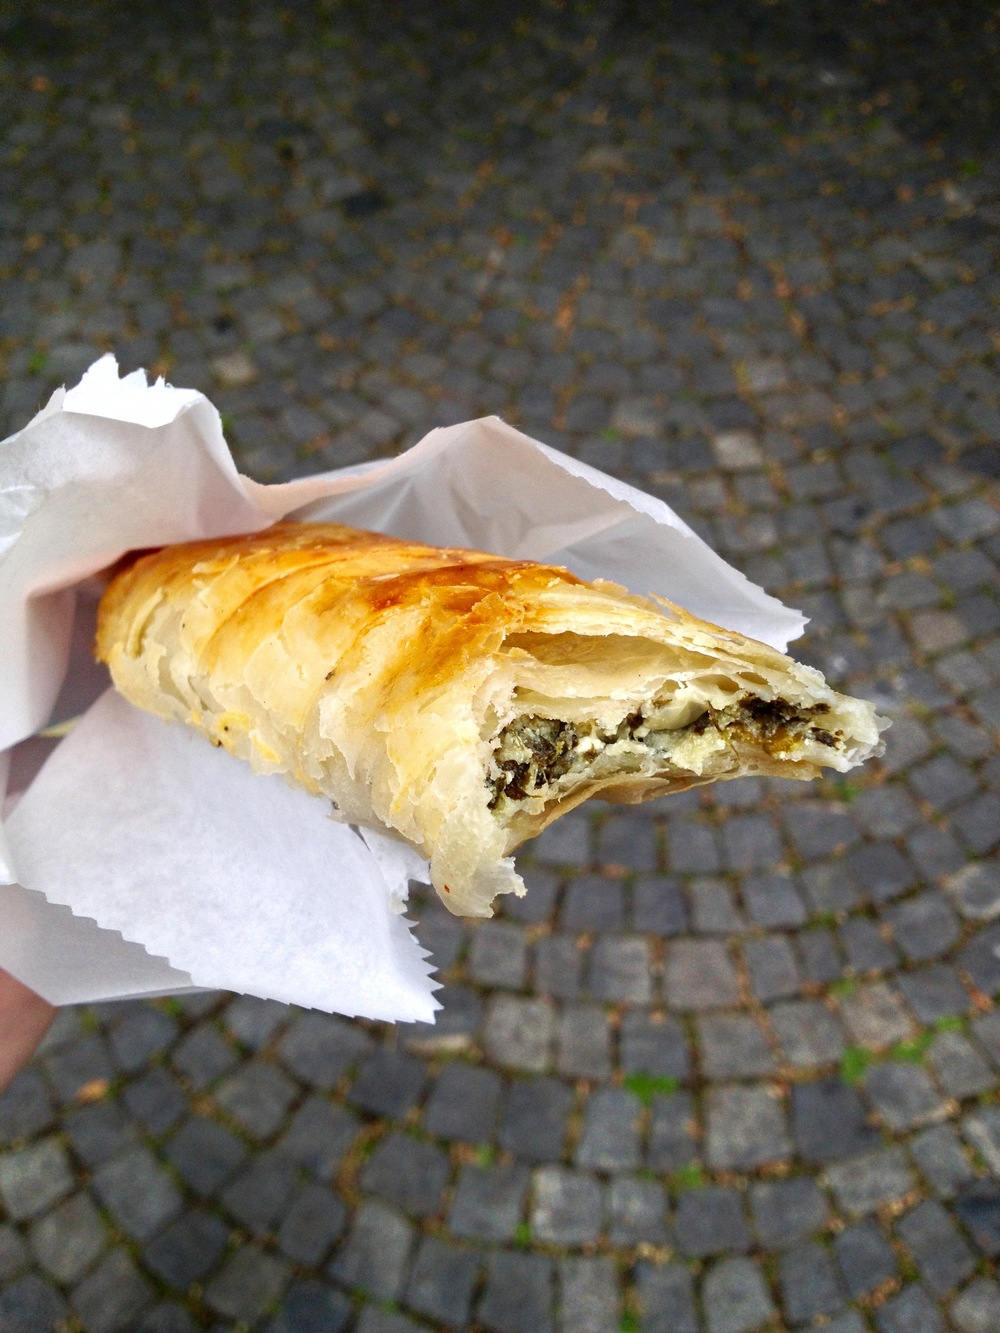 A spinach-filled, savory pastry